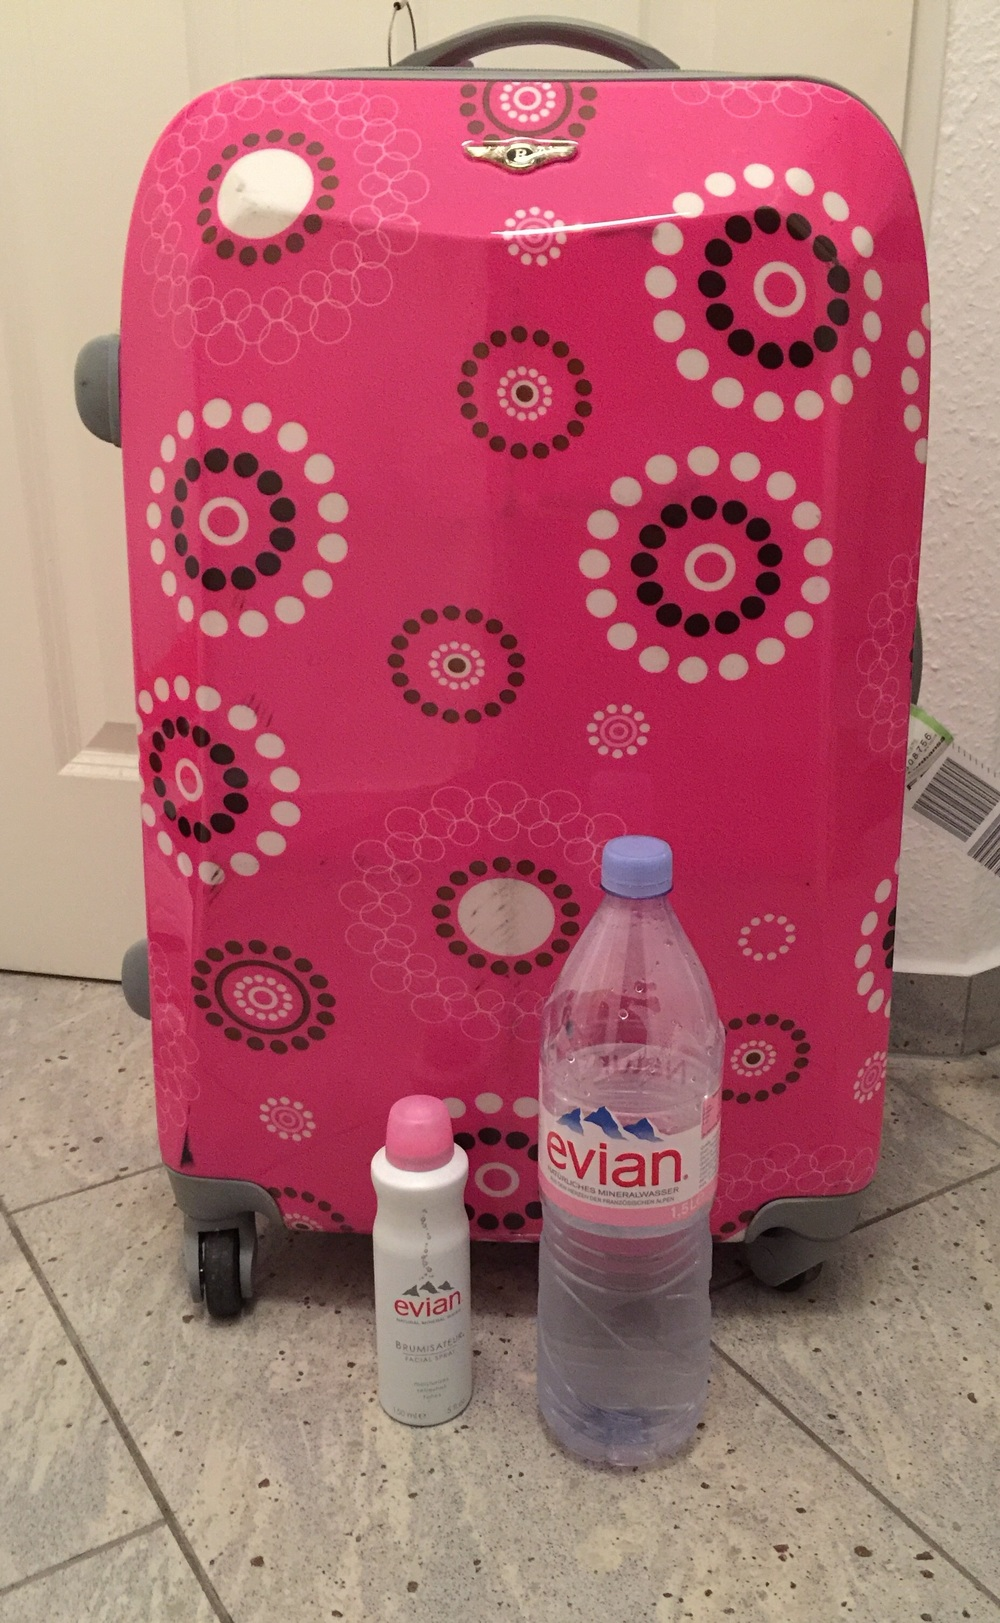 Evian Facial Spray Sweepstake